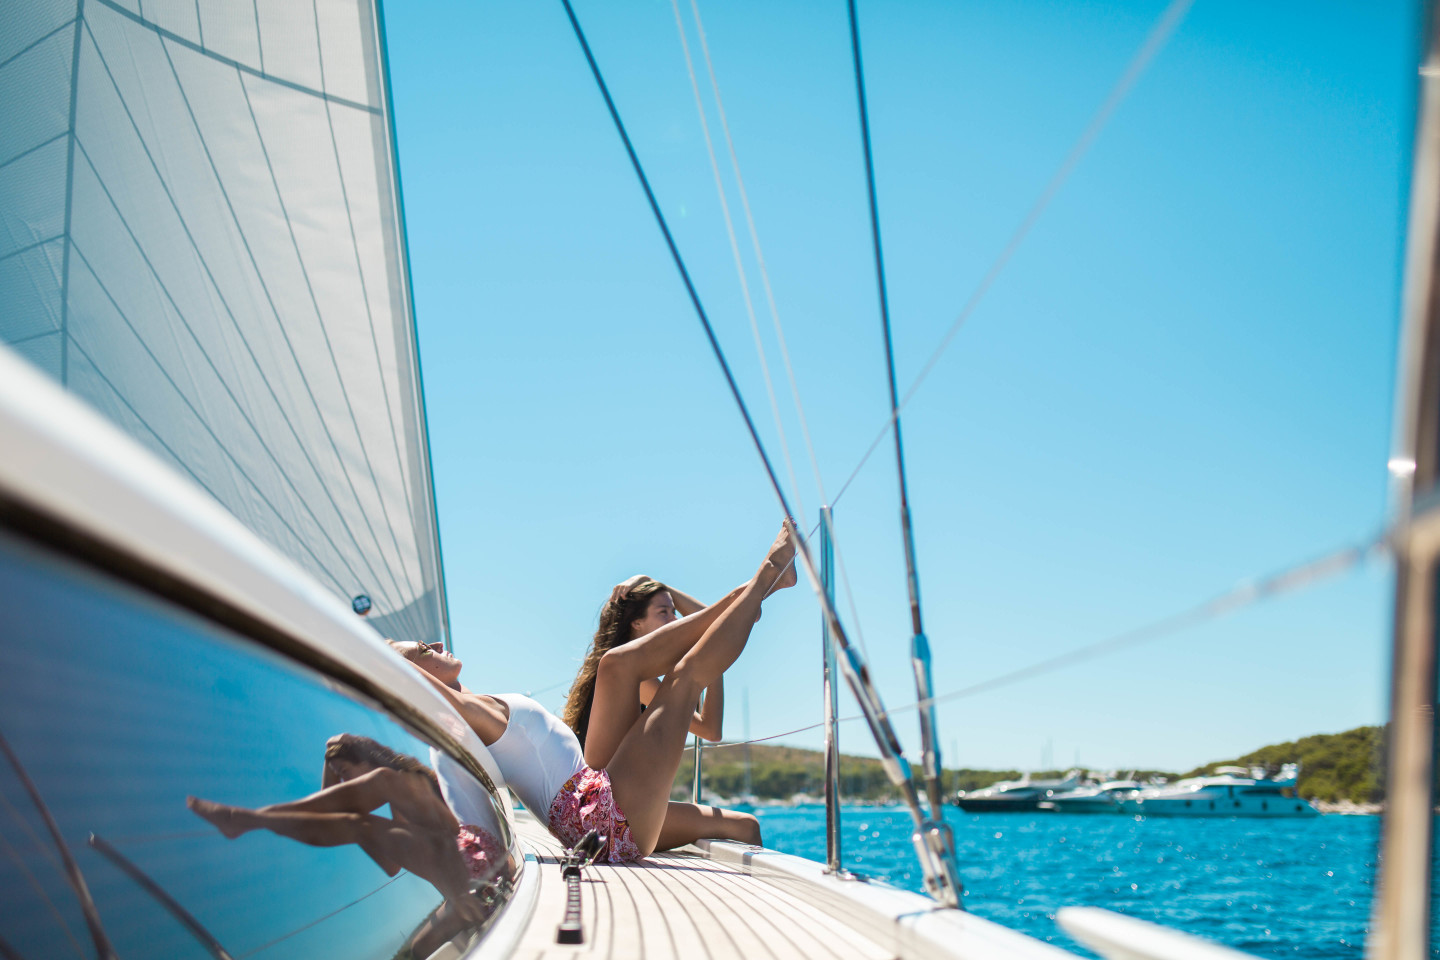 flexible charter summer experience boating rent a boat yacht with family friends